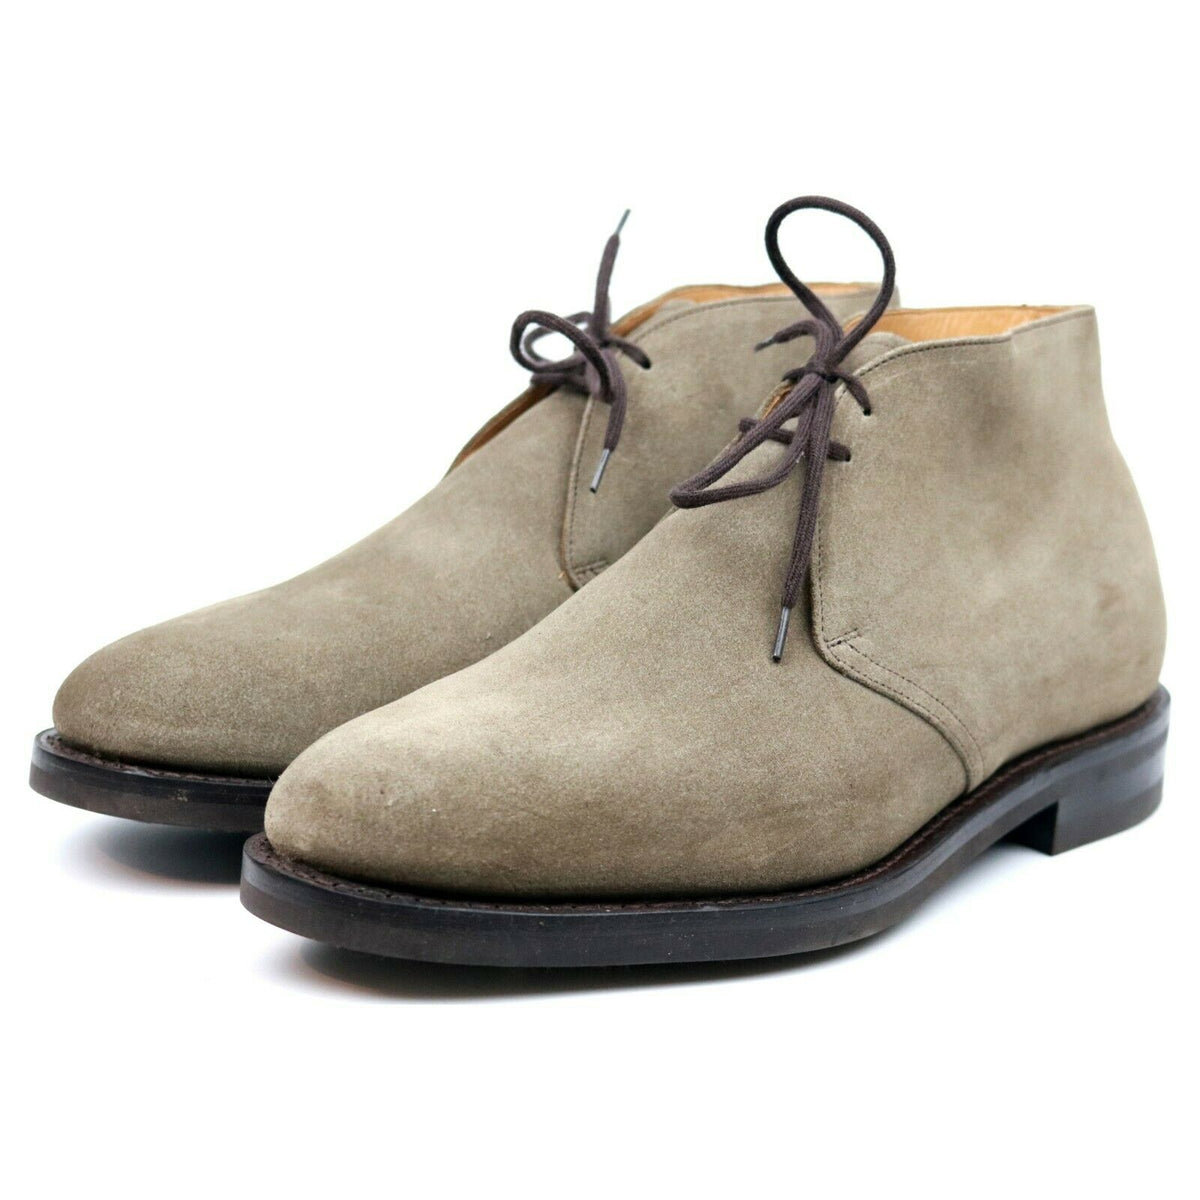 Church's 'Ryder 3' Beige Suede Chukka Boots UK 9 G